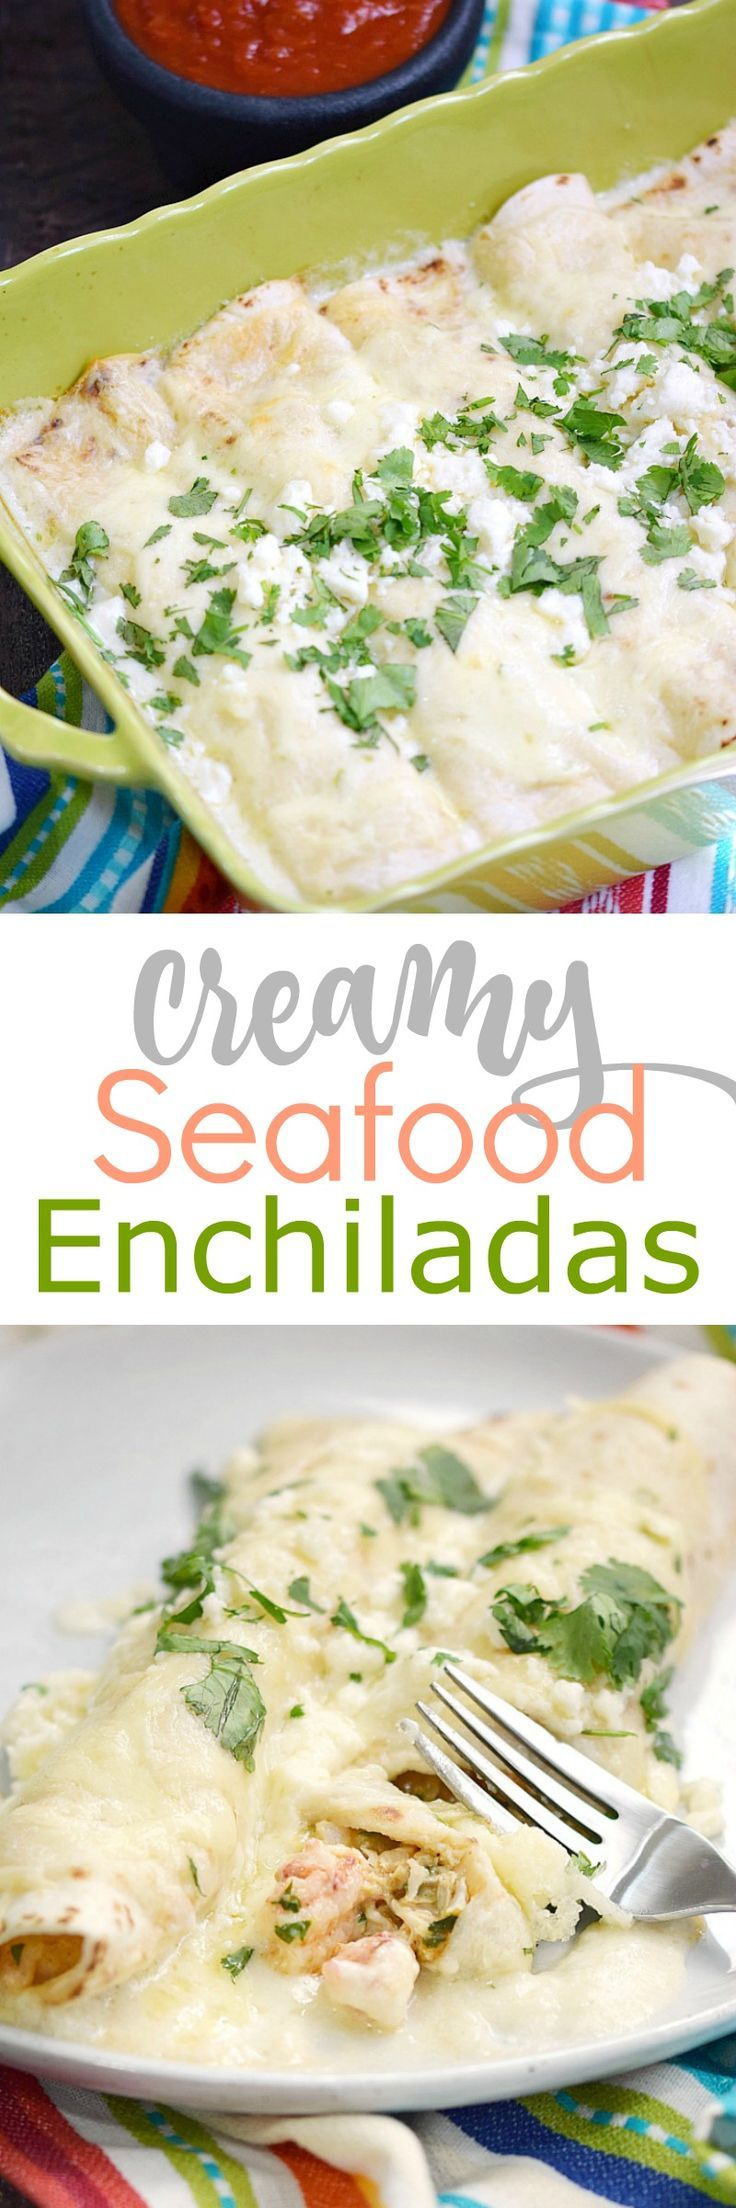 Msg 4 21+ These Creamy Seafood Enchiladas are packed full of shrimp and crab in a creamy and delicious sauce that isn't too spicy or too bland! cookingwithcurls.com #CervezaCelebration #ad